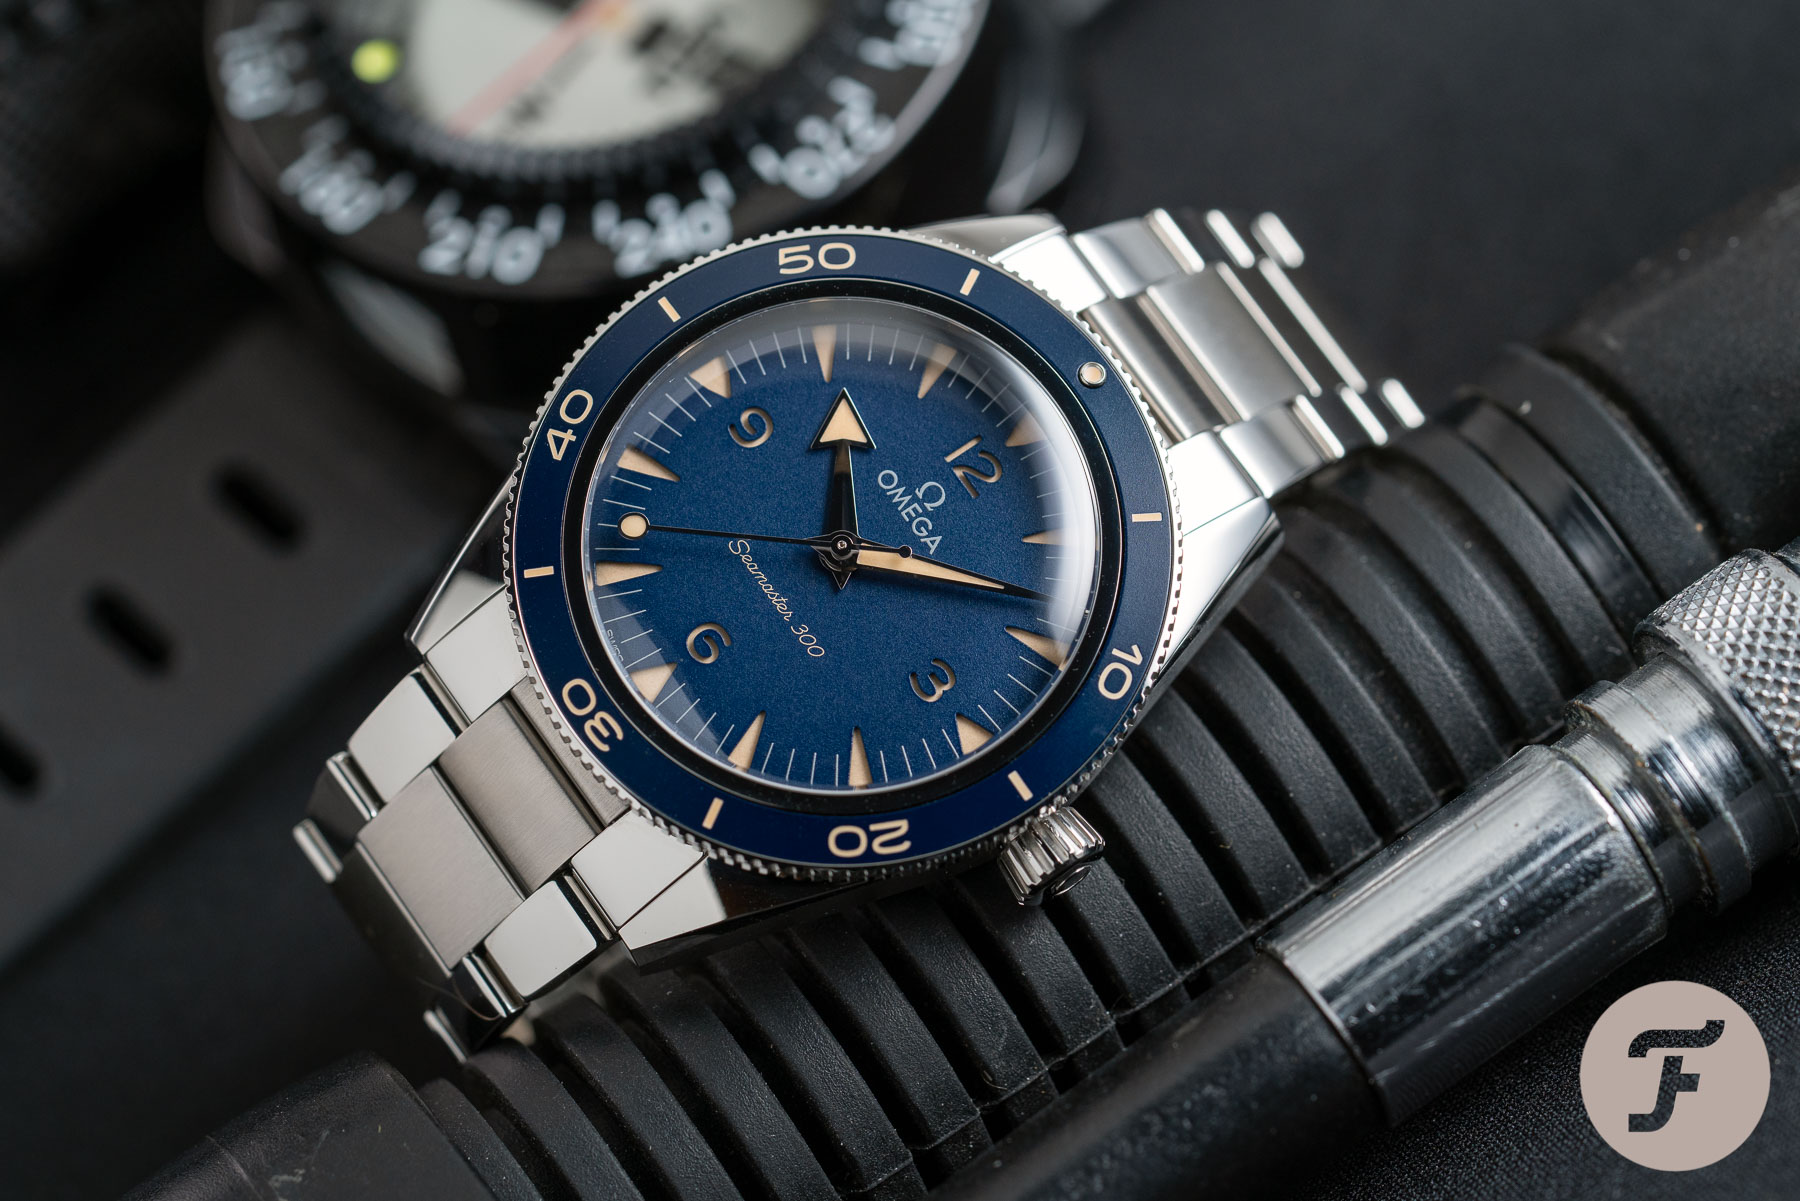 How Watches Work: What Is The Difference Between 316L And 904L Stainless Steel? And Why Does Rolex Use 904L Steel?